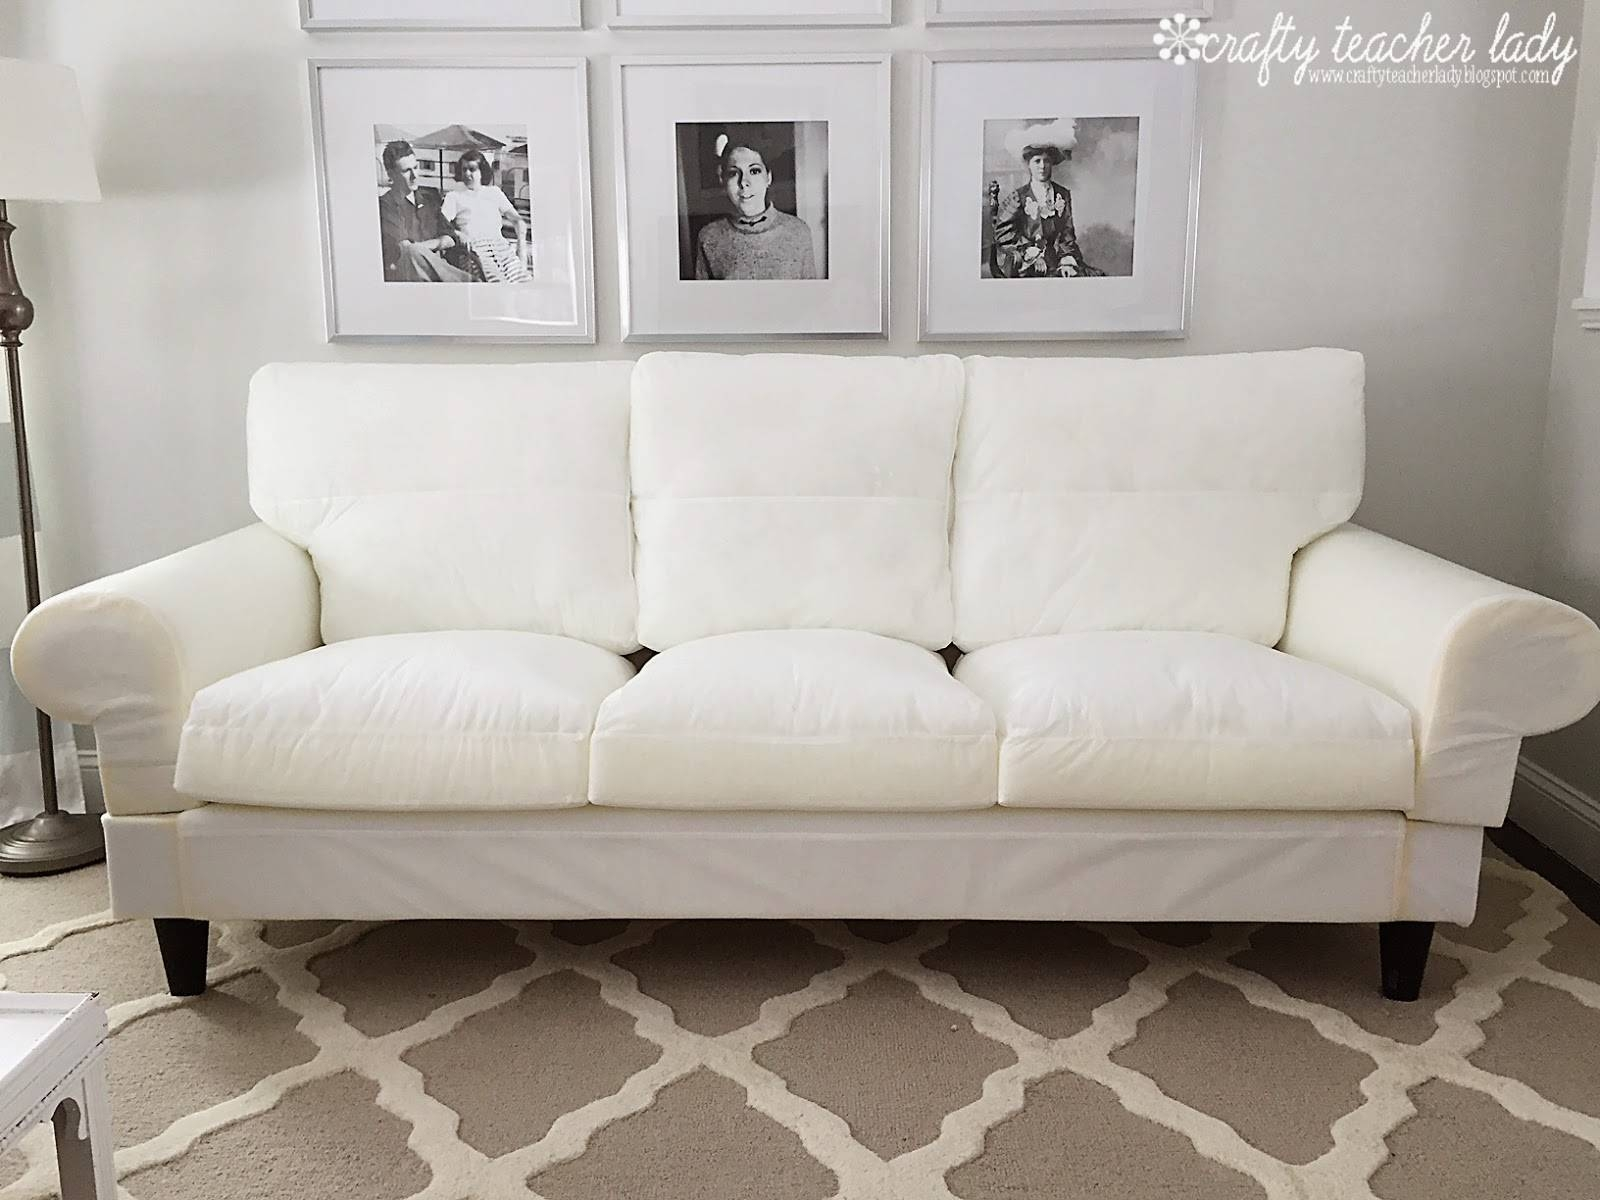 Sofas Center : Diy Sectional Couch Covers Seatcliner Sofa Target for Diy Sectional Sofa (Image 24 of 30)